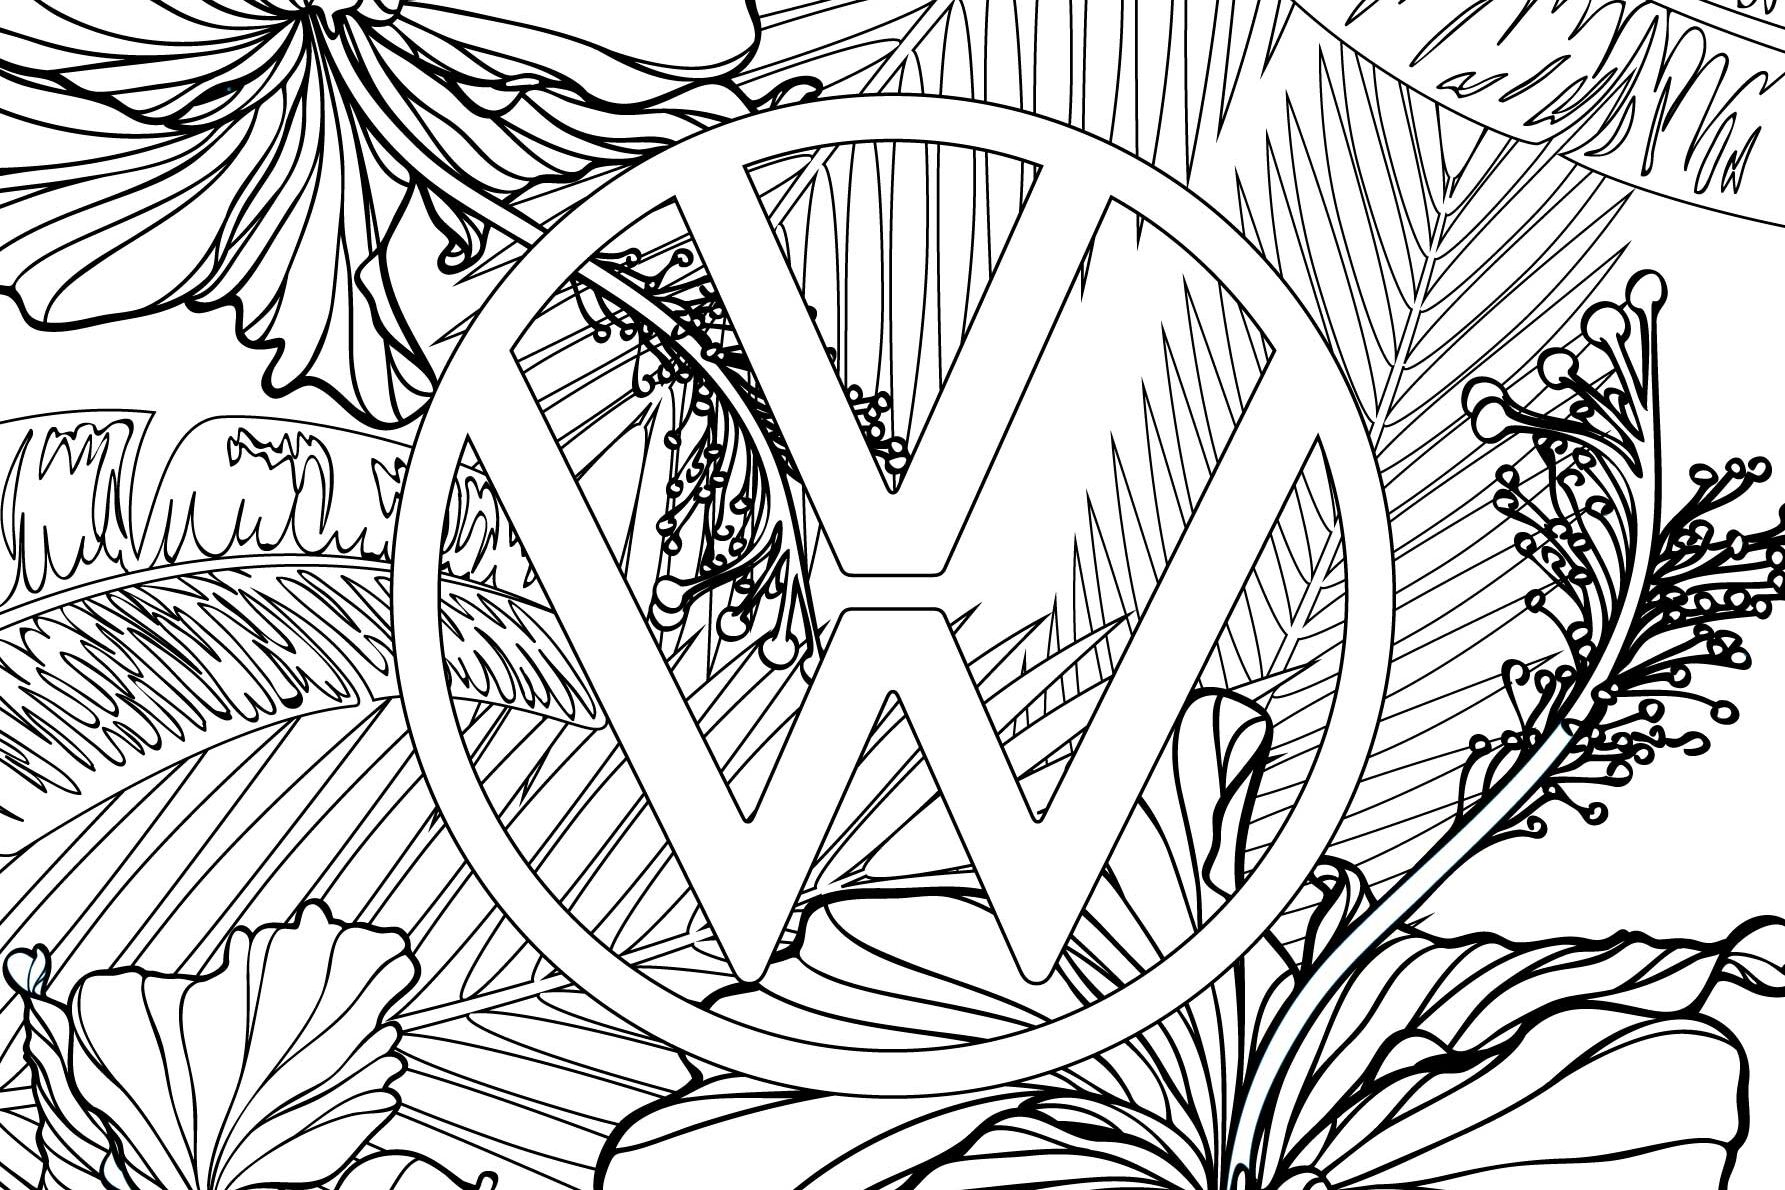 Volkswagen Colouring Book Theme 3 | VW Lifestyle